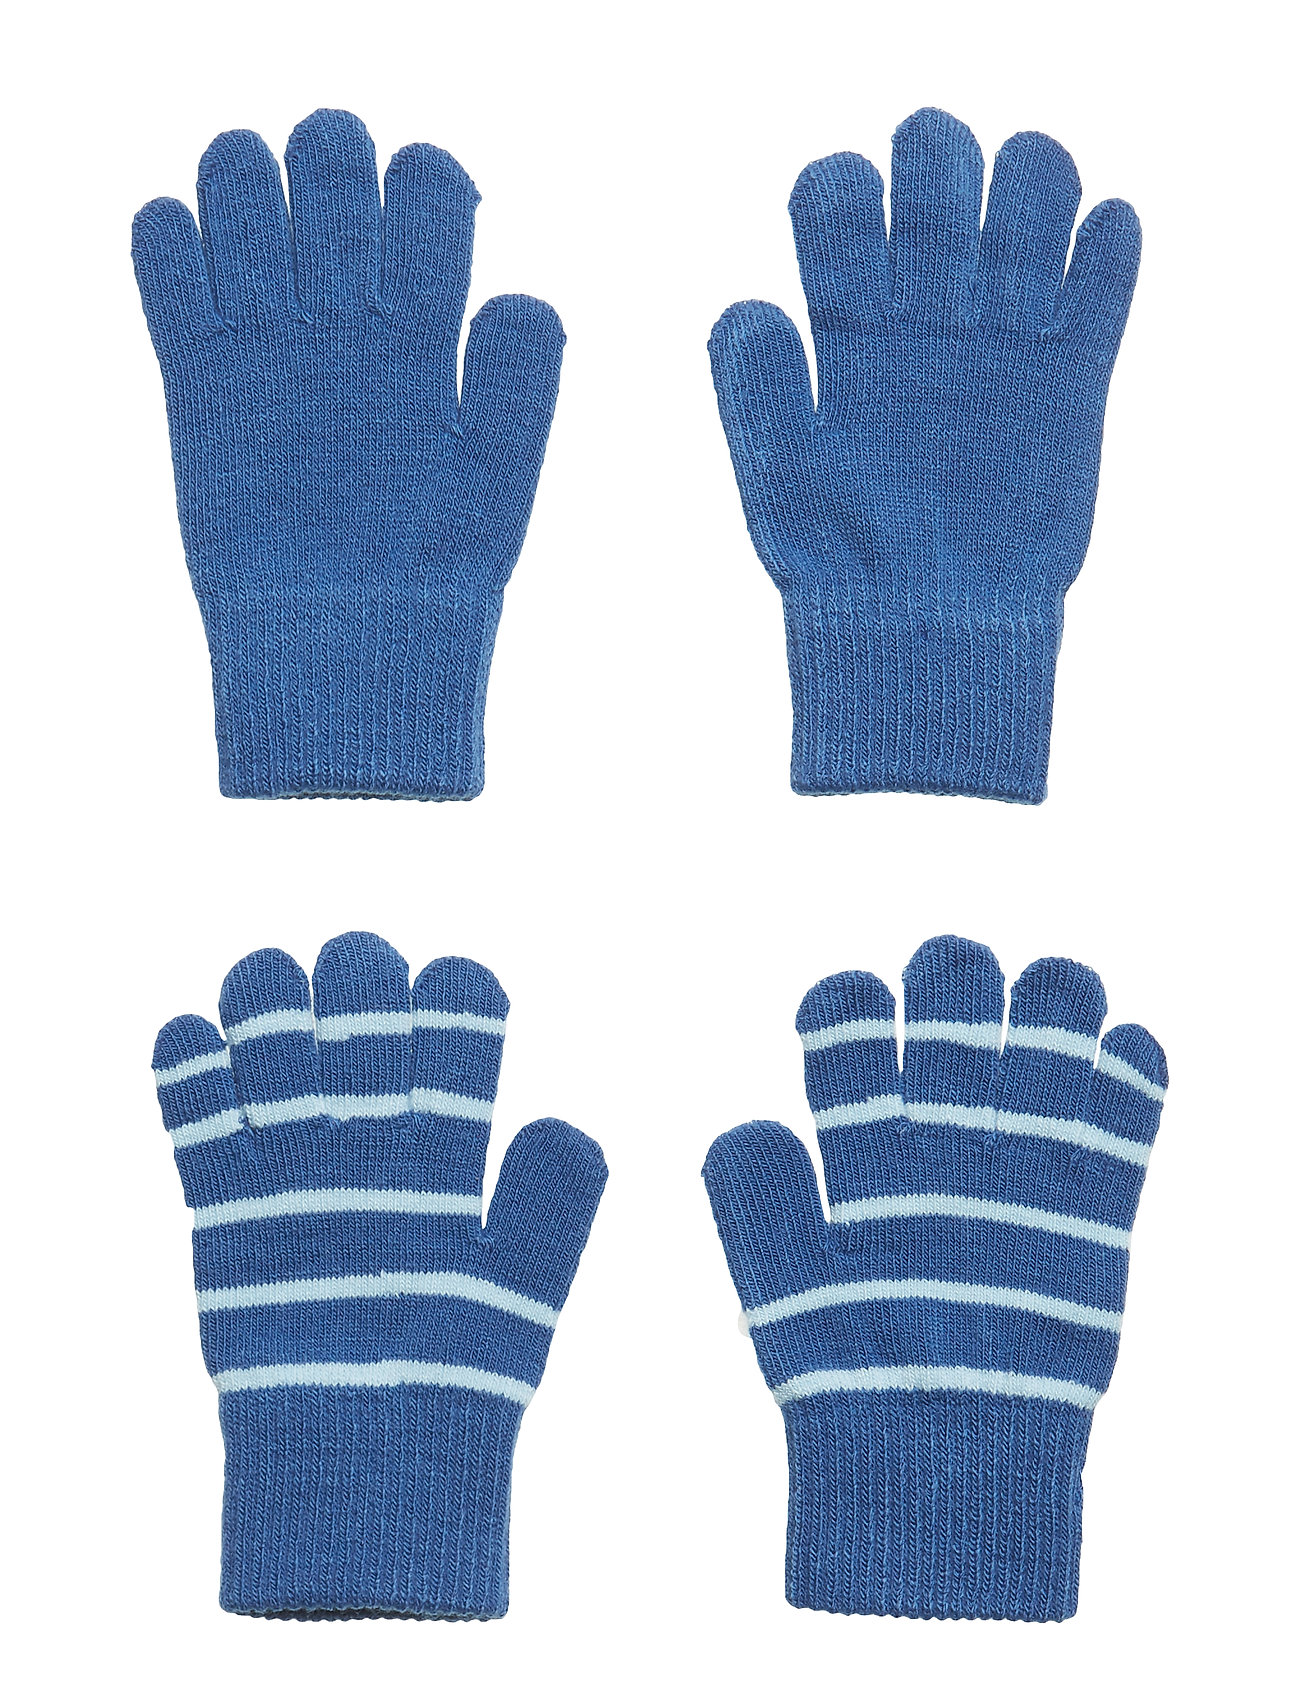 Polarn O. Pyret Knitted Magic Gloves in Pack of 2